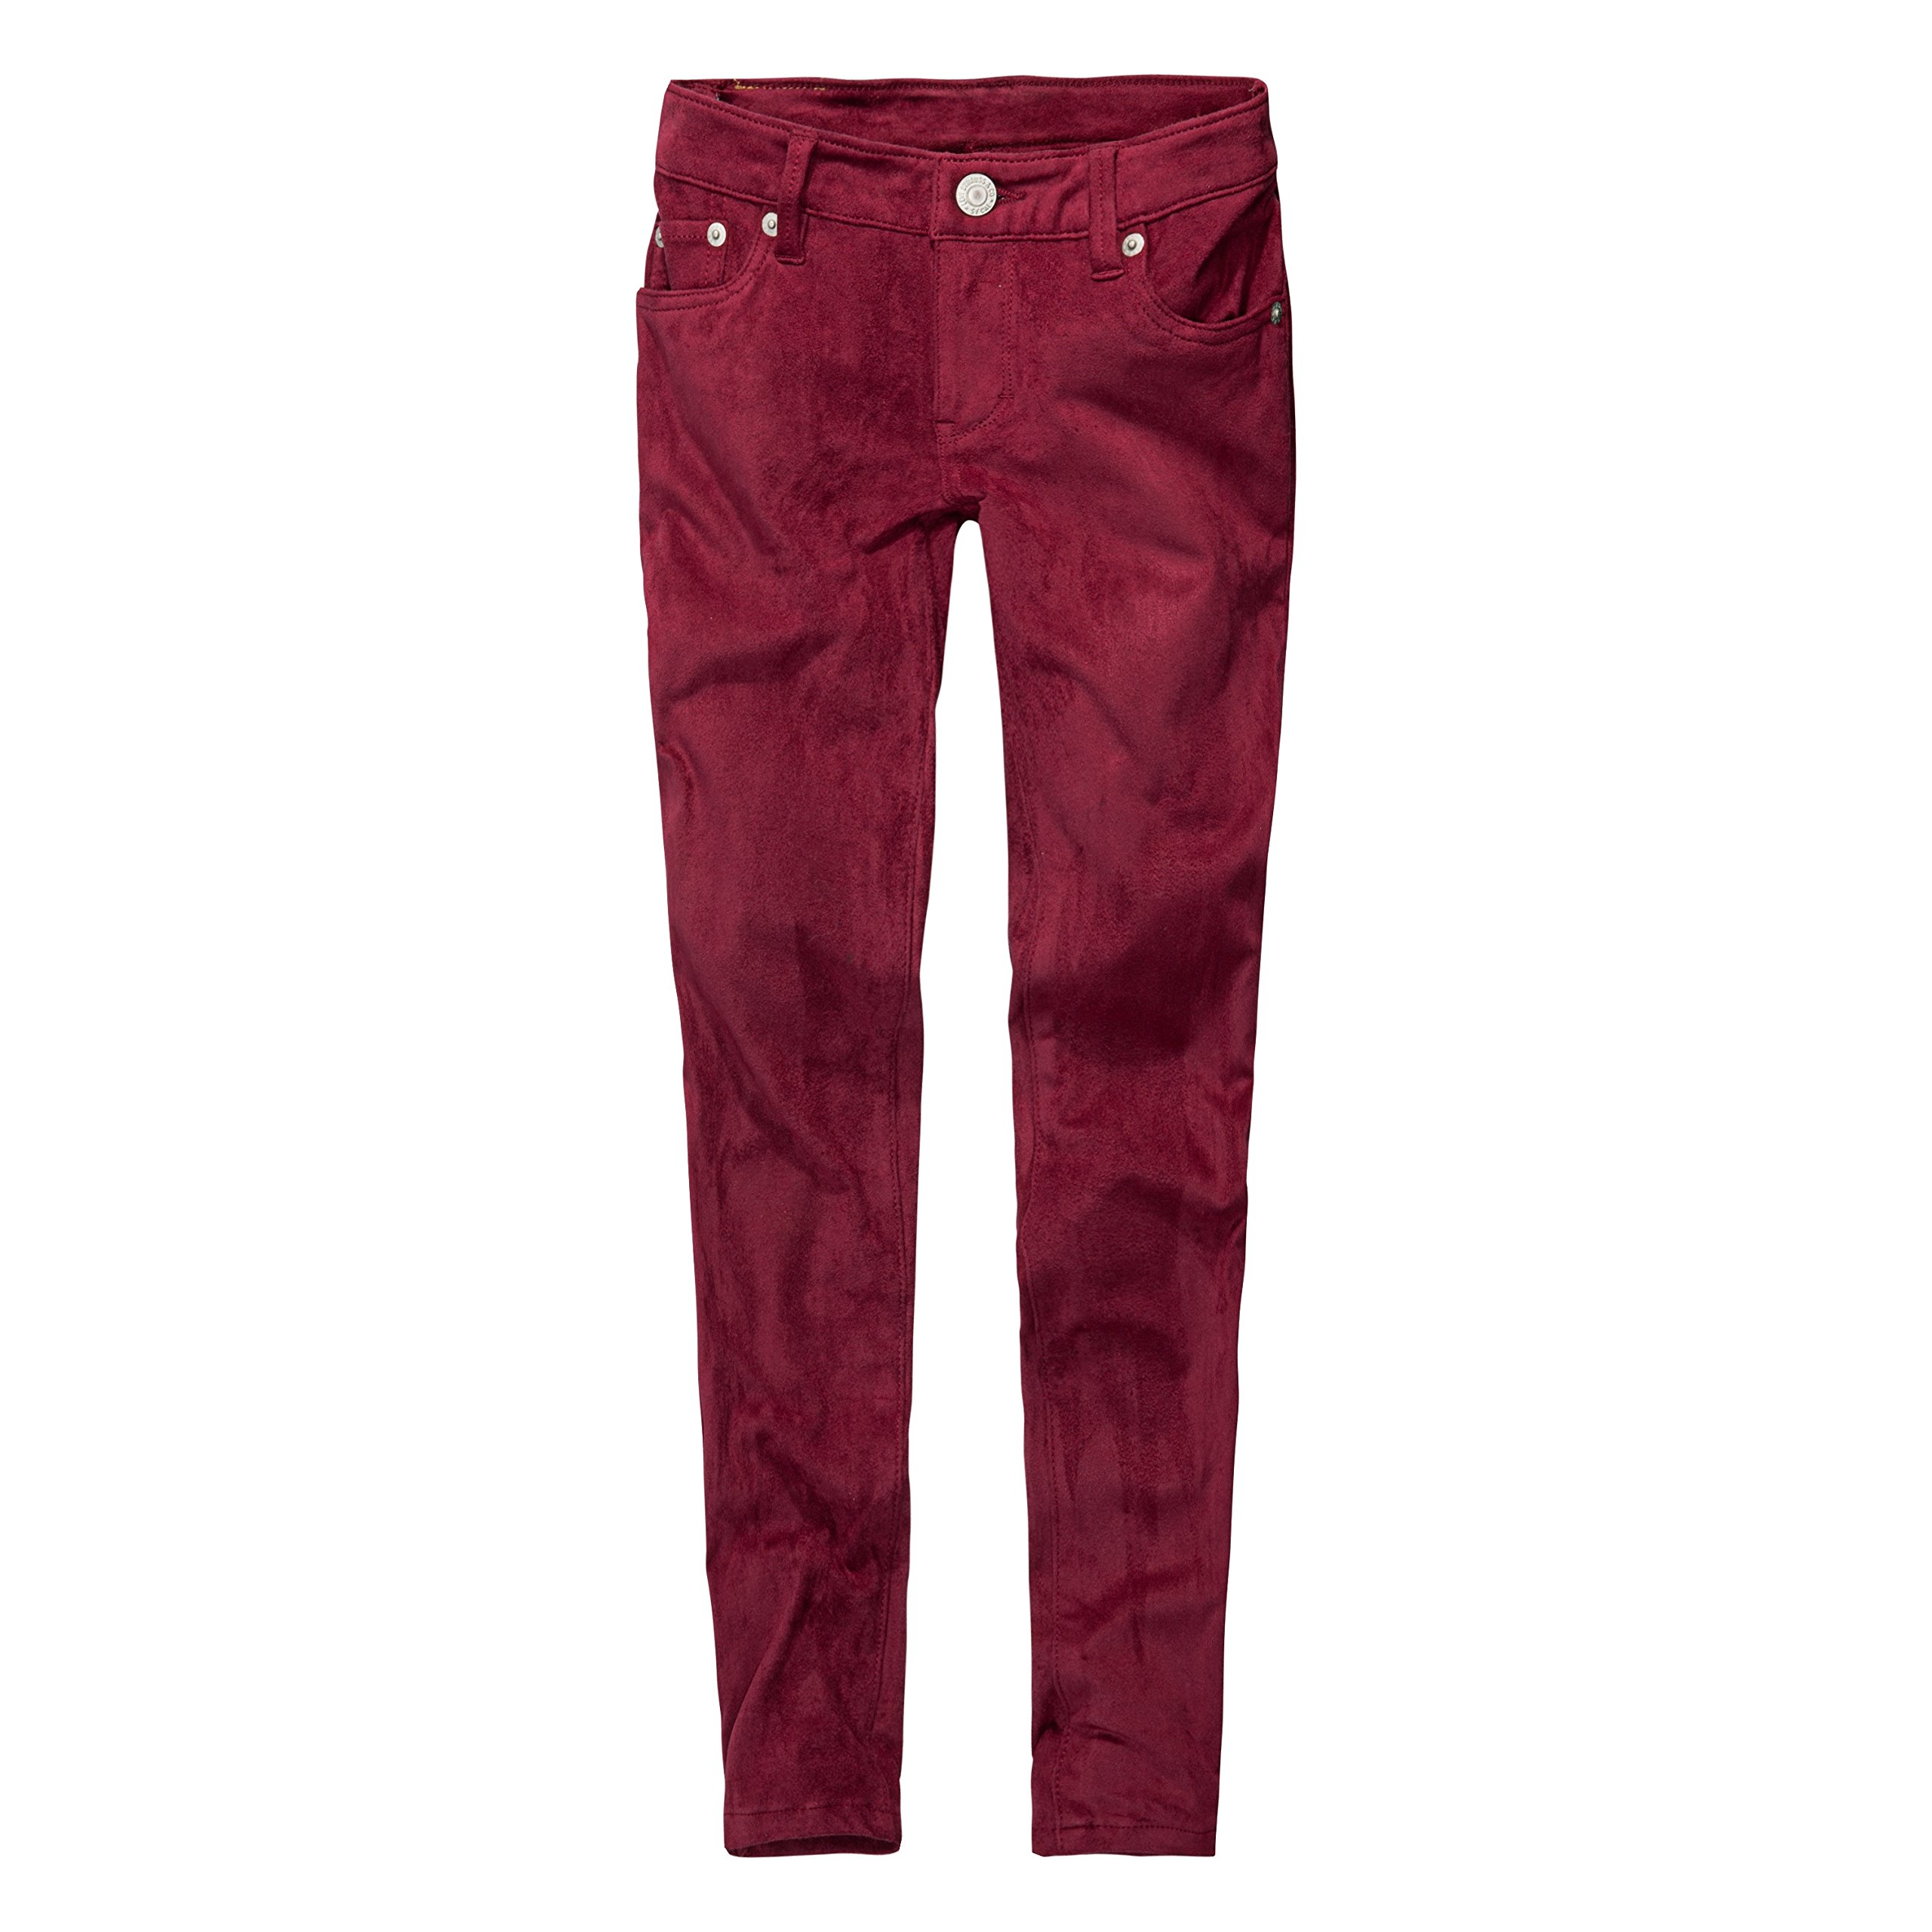 Levi's Big Girls' 710 Super Skinny Fit Faux Suede Jeans, Beet Red, 7